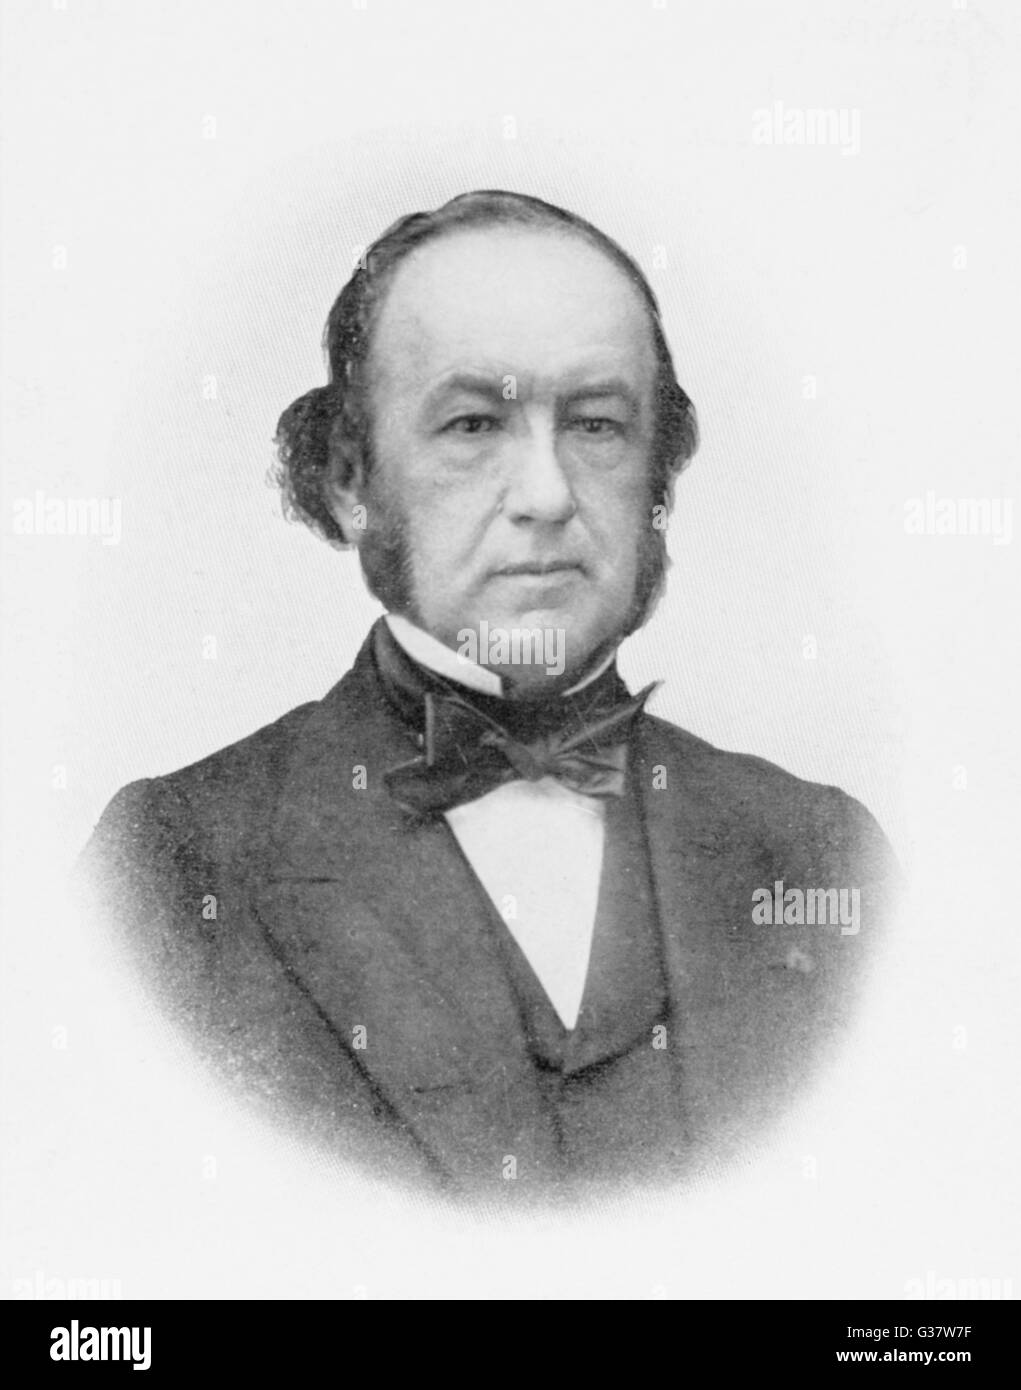 CLAUDE BERNARD  French physiologist who  investigated the chemical  phenomena of digestion      Date: 1813 - 1878 - Stock Image